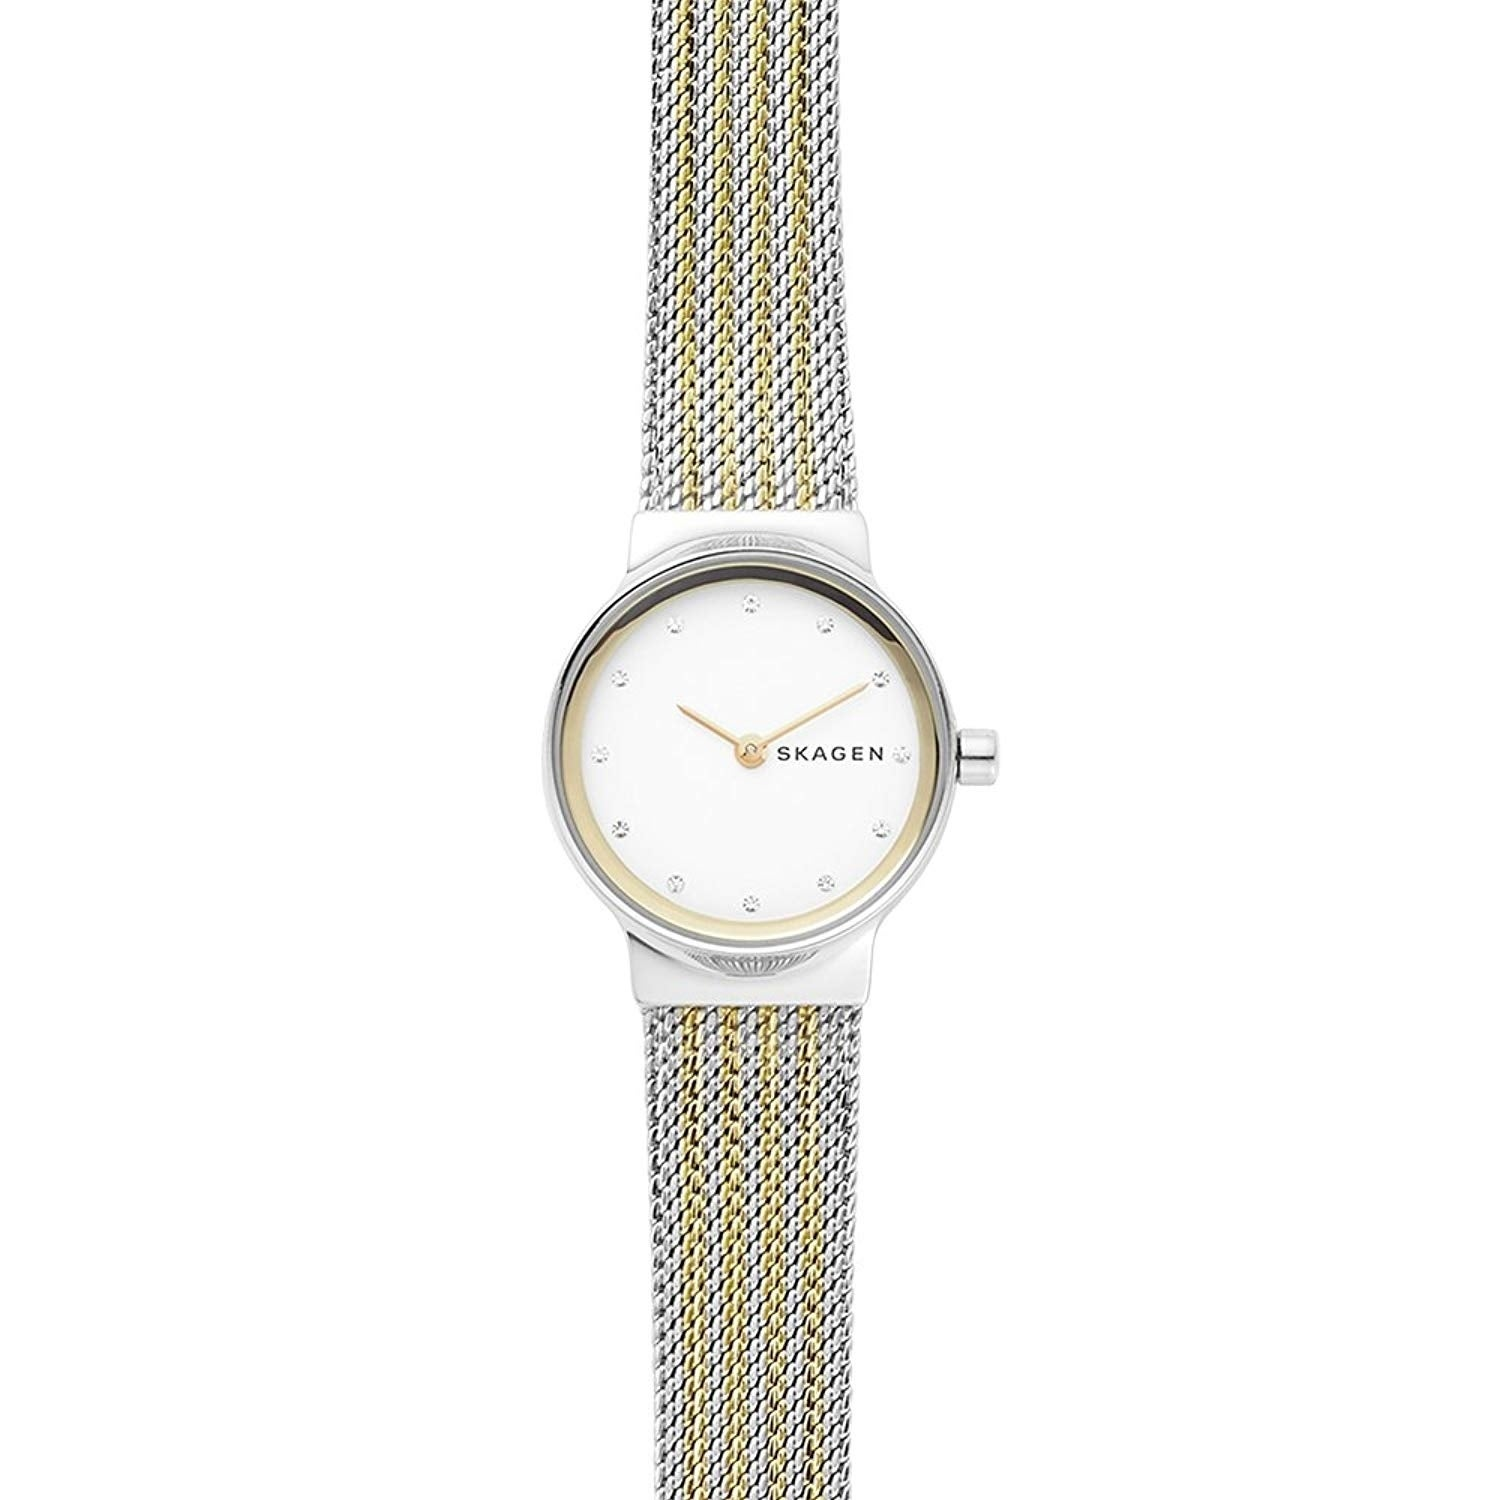 9839859f0320 Shop Skagen Women s SKW2698 Freja White Dial Two-Tone Stainless Steel Mesh  Bracelet Watch - Free Shipping Today - Overstock - 24216407